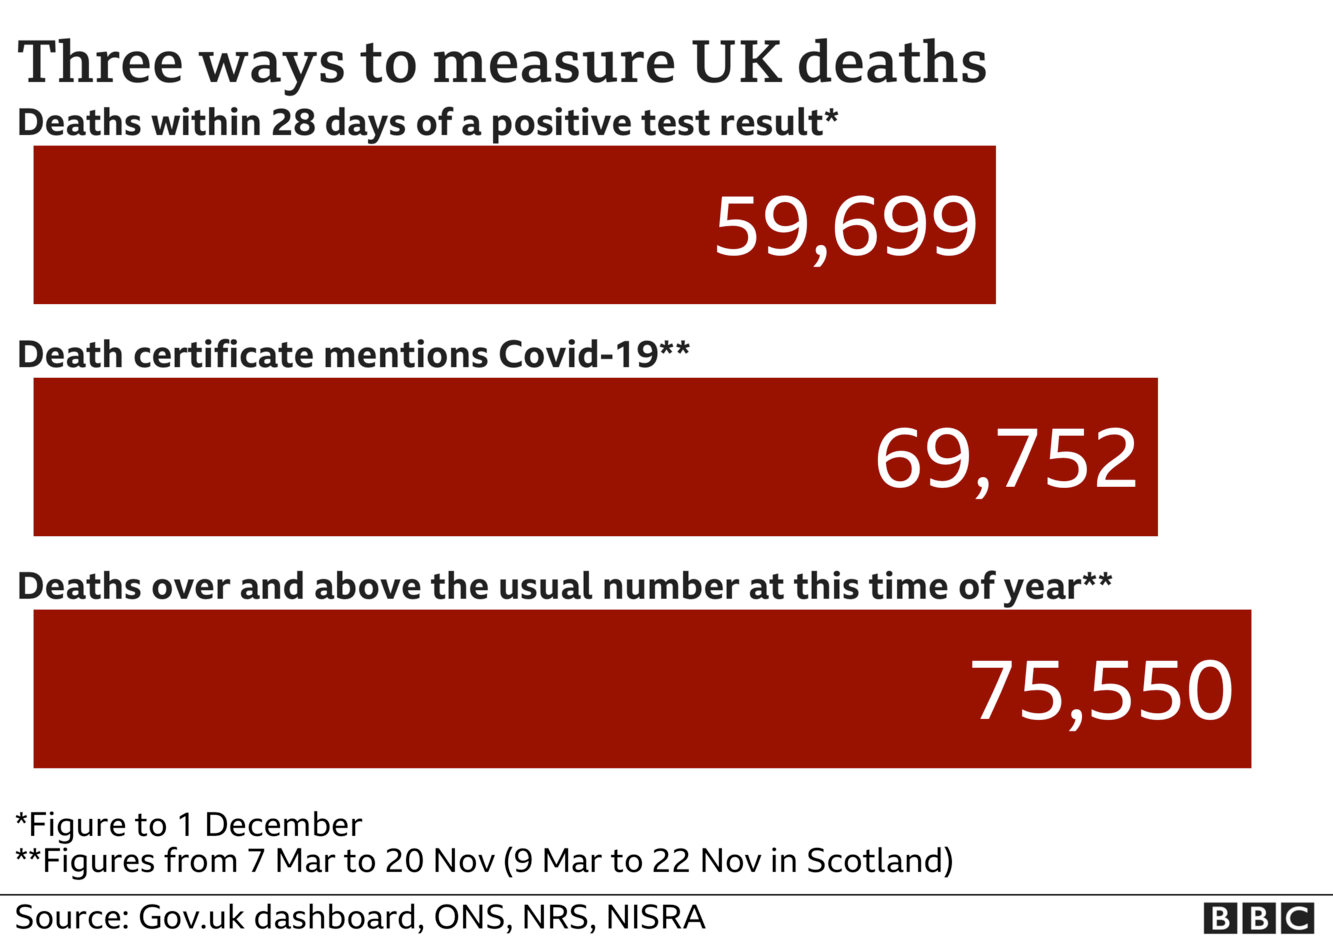 Chart shows three ways of measuring coronavirus deaths - government statistics count everyone who dies within 28 days of a positive test, the total is now 59,699. ONS stats include everyone where coronavirus was mentioned on the death certificate and that total is now 69,752. The final total includes all excess deaths over and above the usual number and that is now 75,550